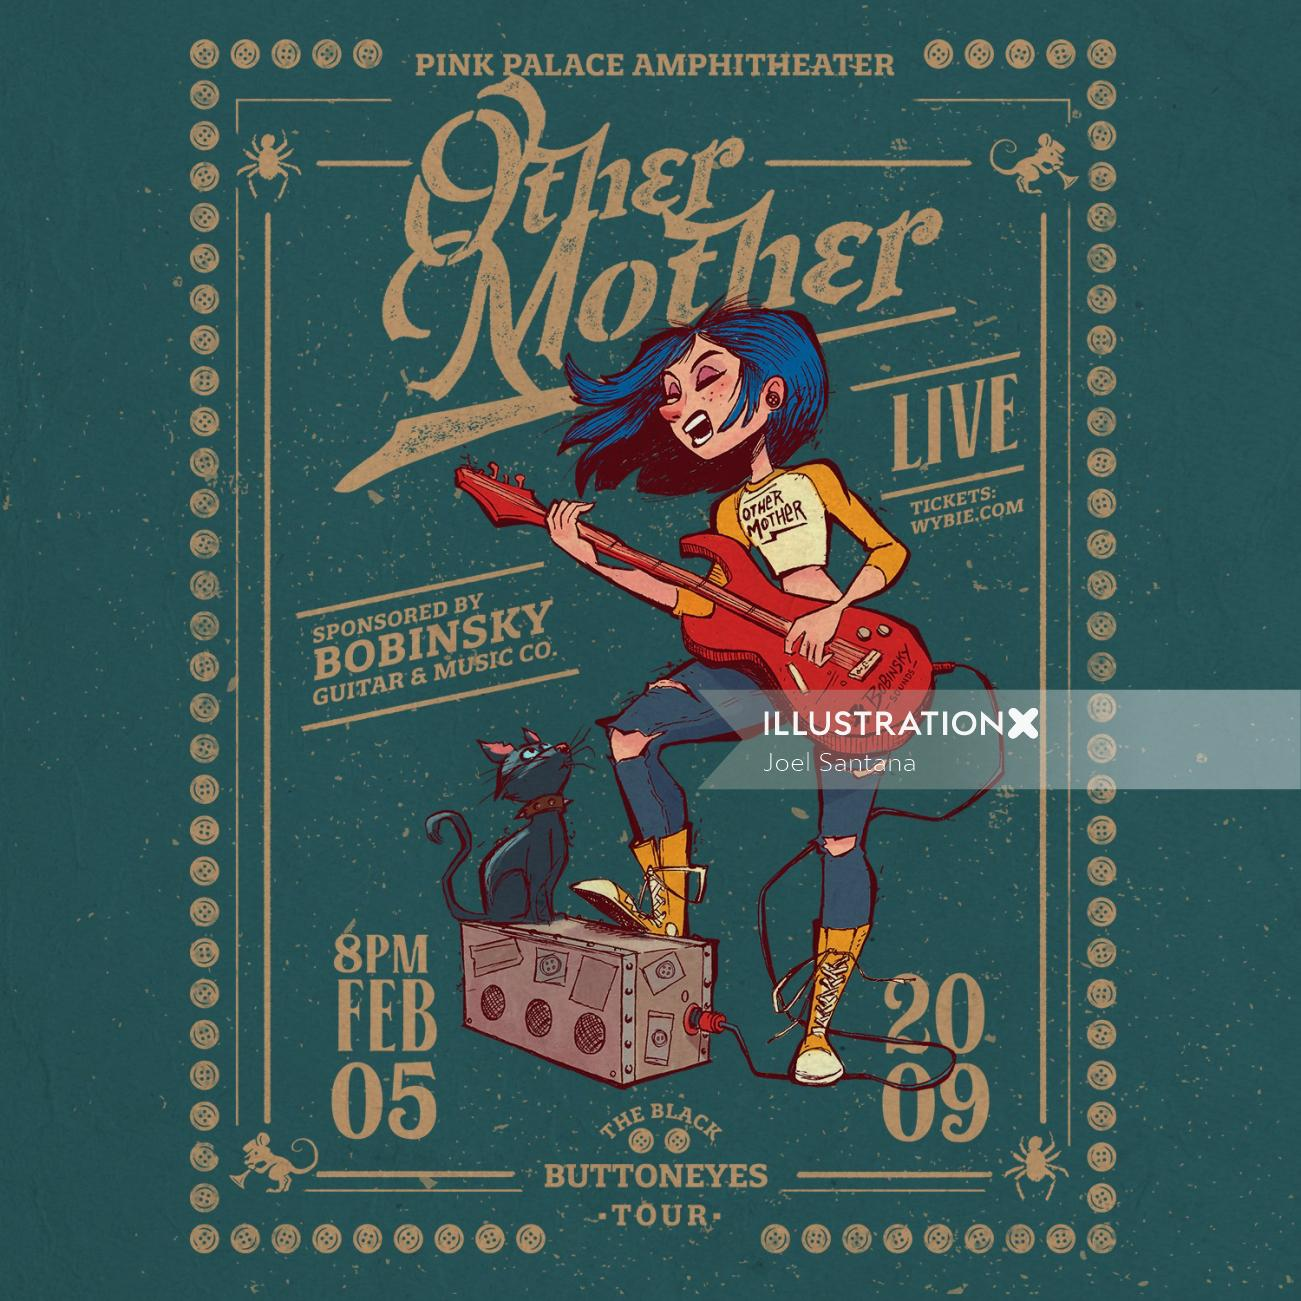 Cover poster design for Other Mother music